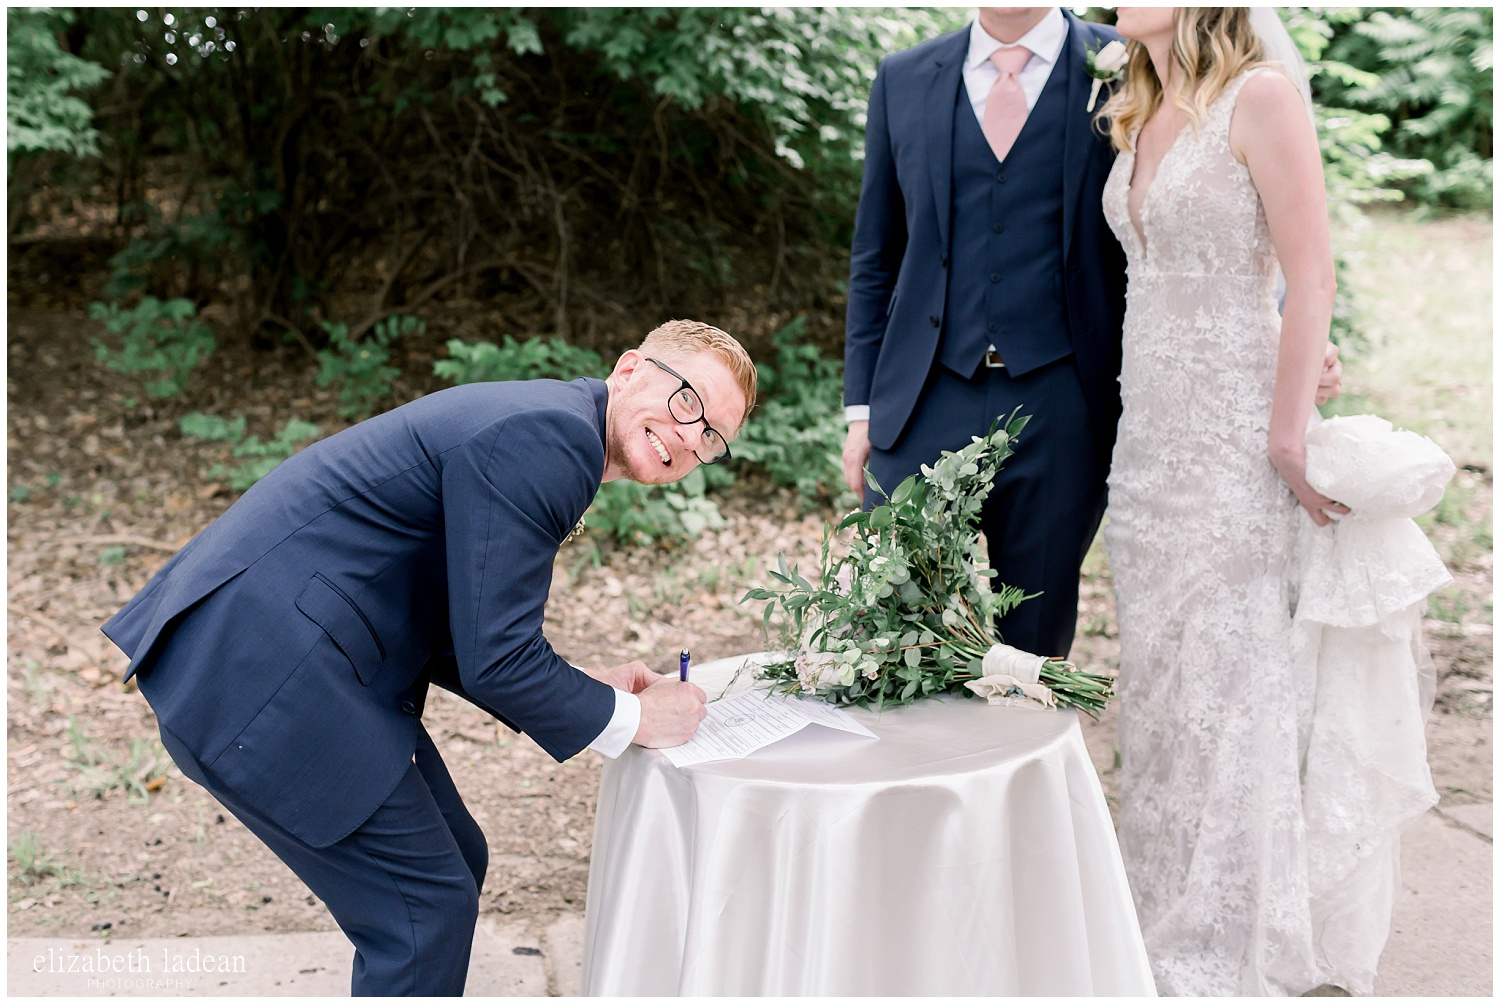 -behind-the-scenes-of-a-wedding-photographer-2018-elizabeth-ladean-photography-photo_3443.jpg